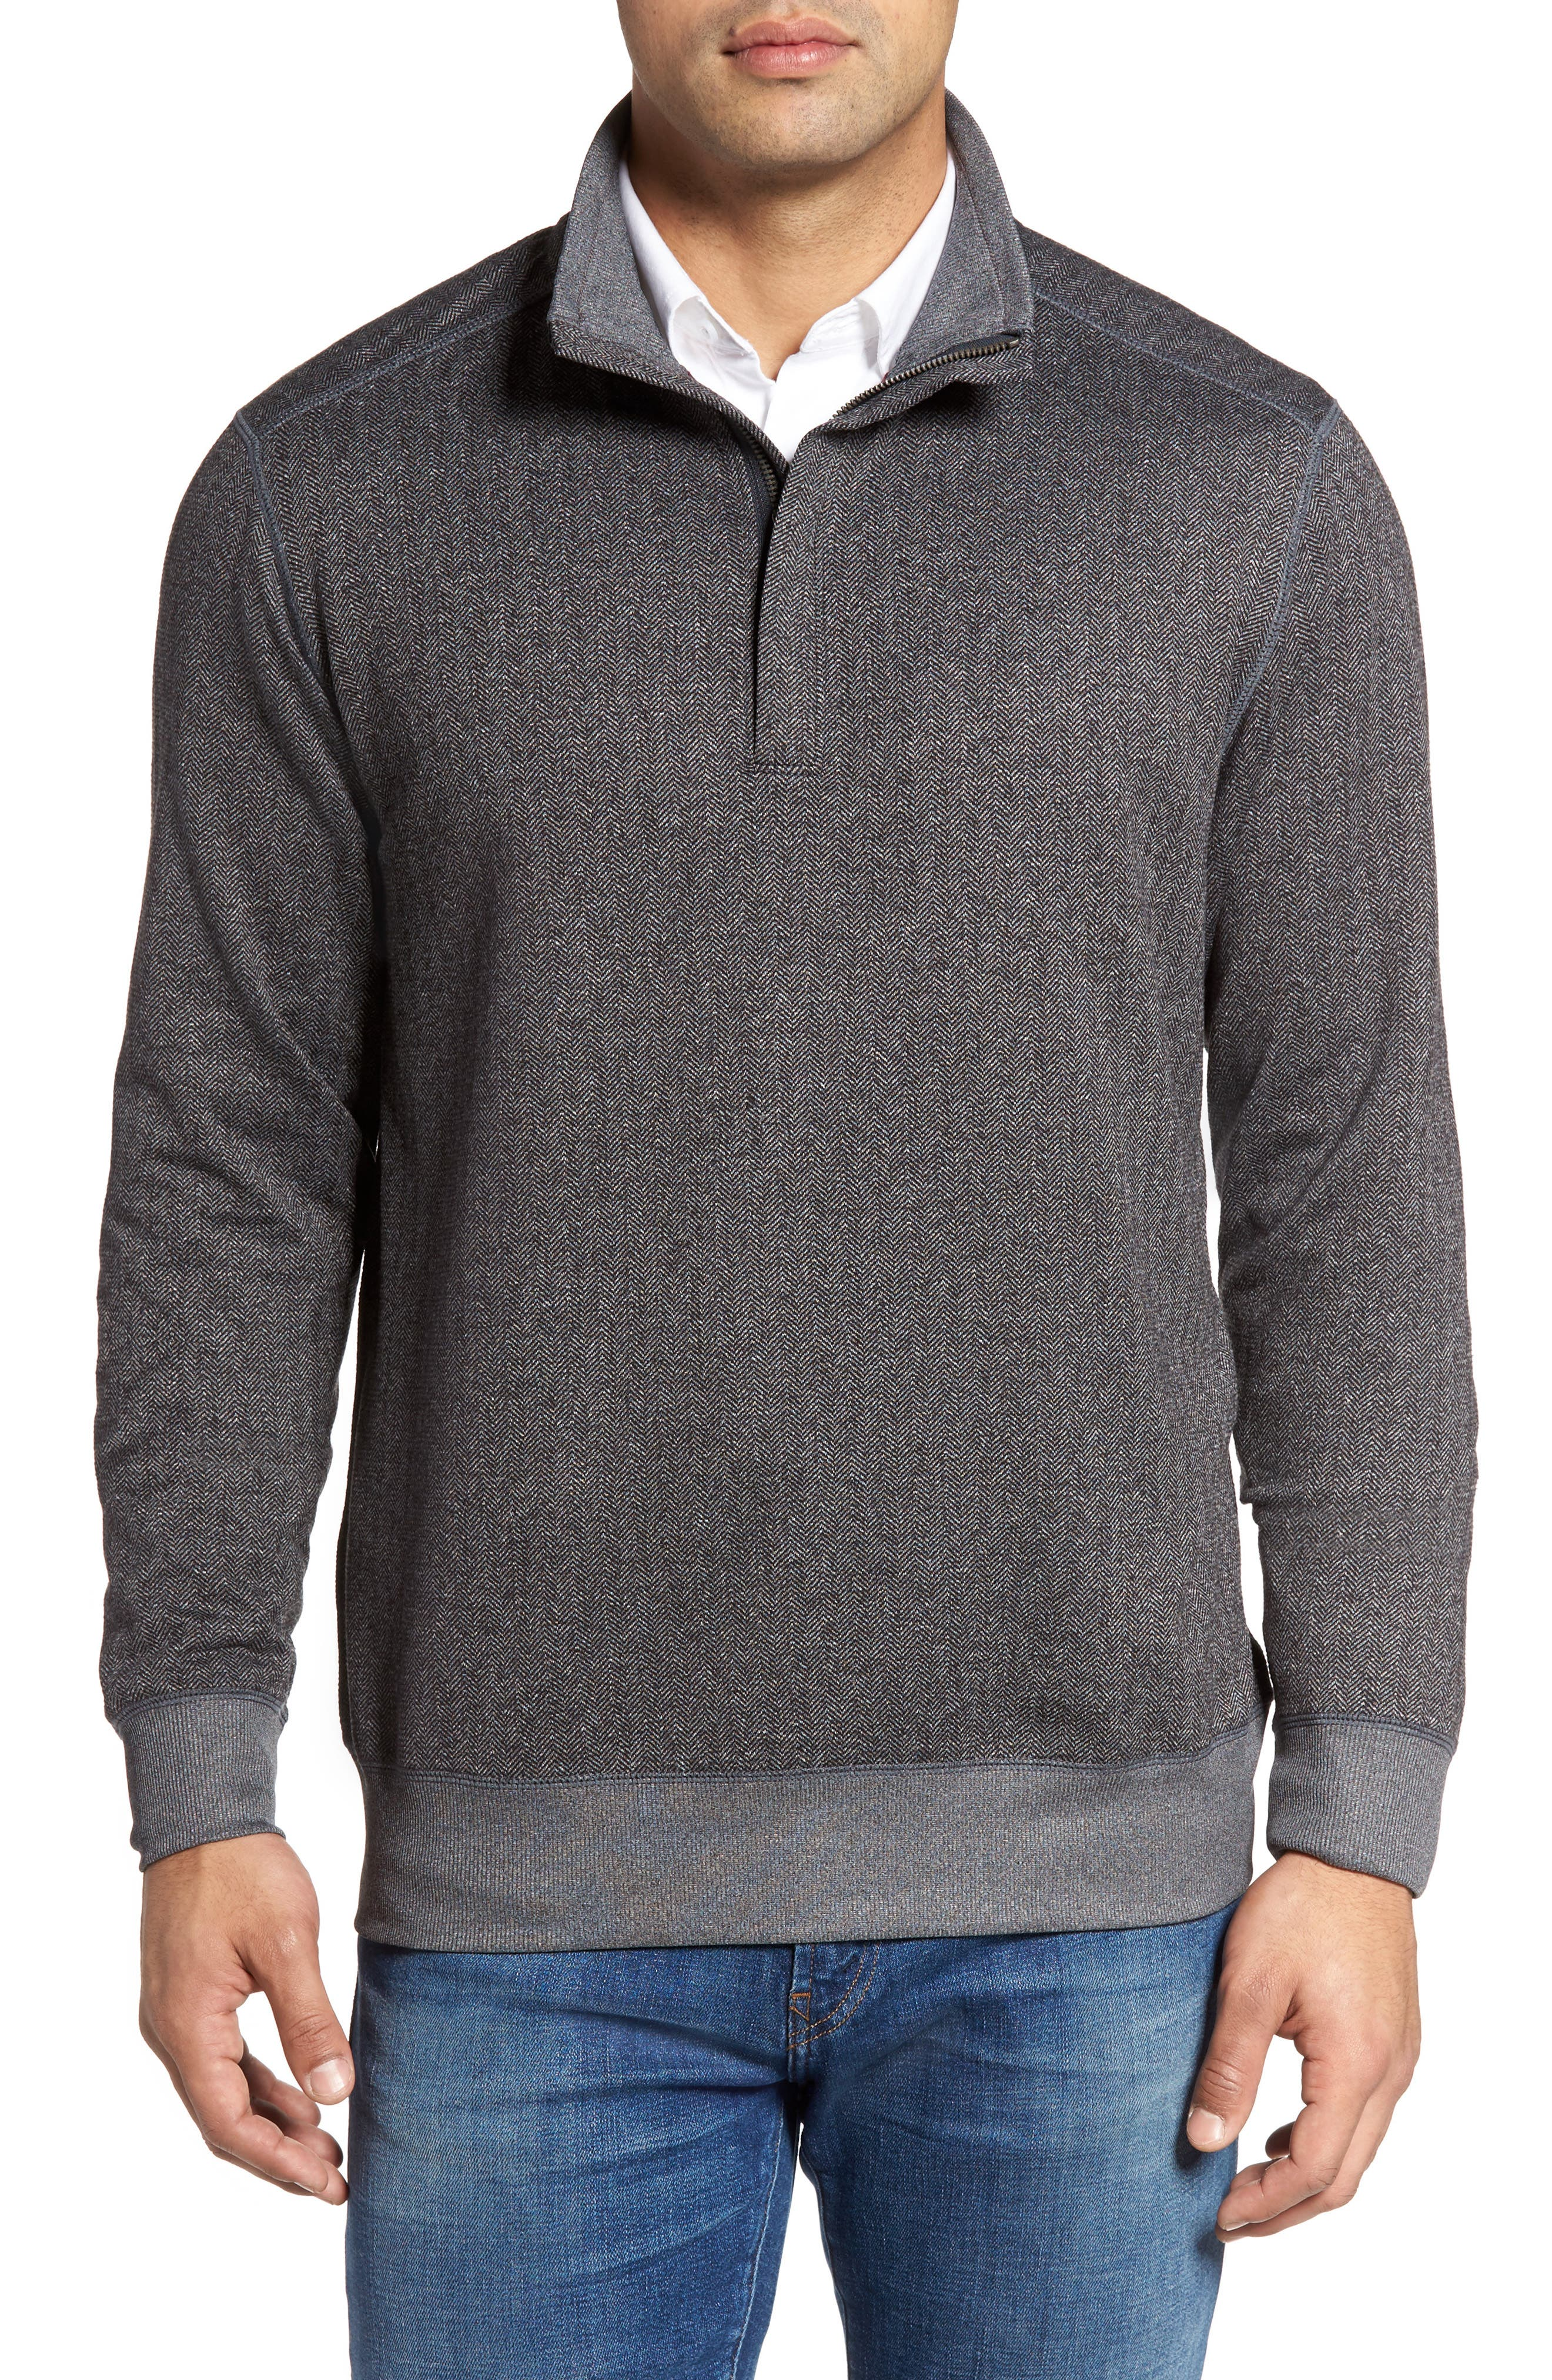 Pro Formance Quarter Zip Sweater,                             Alternate thumbnail 2, color,                             050